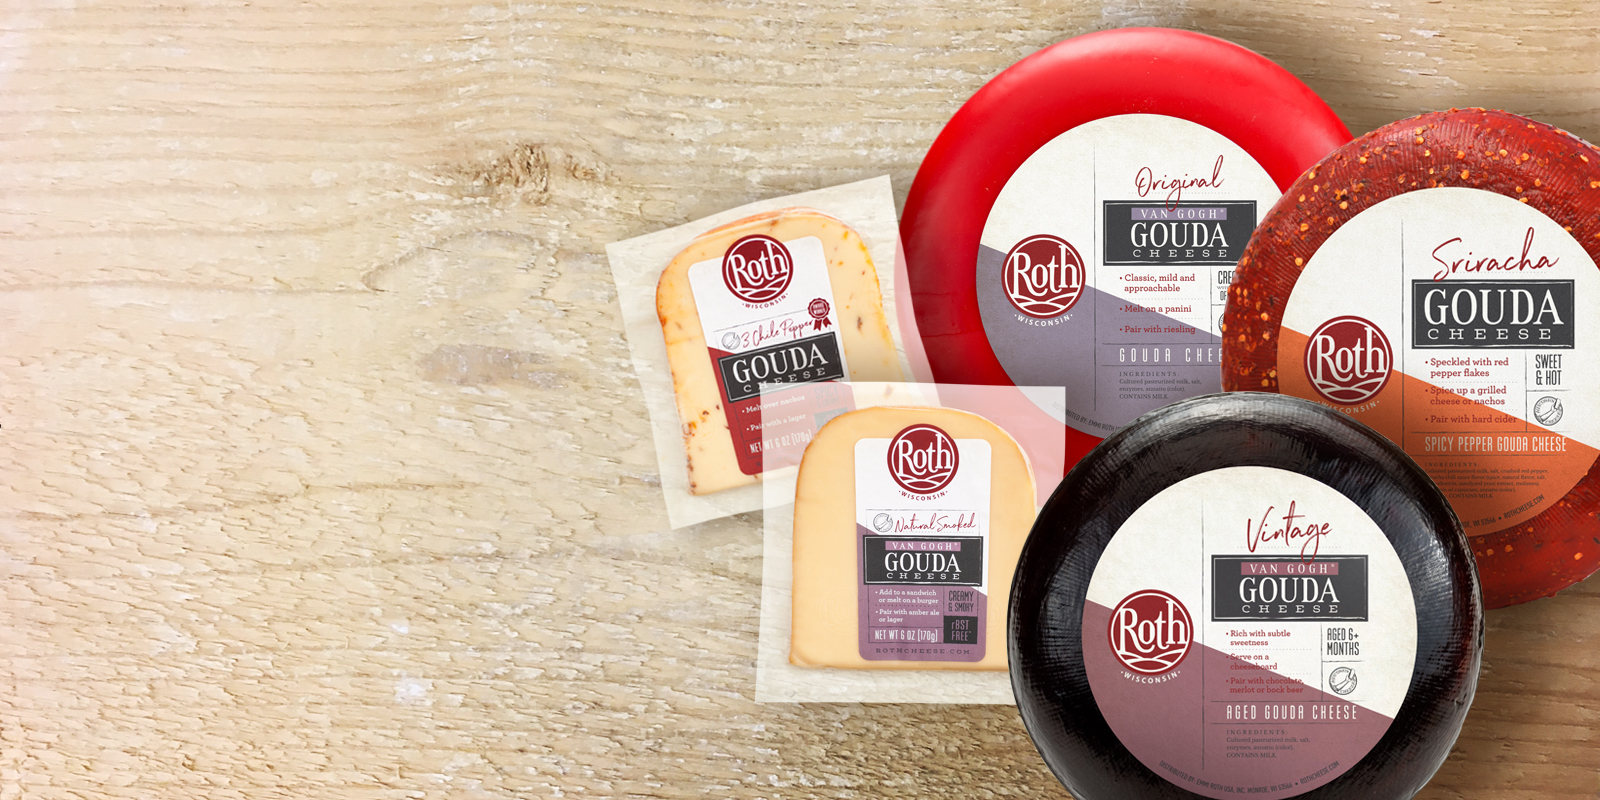 The most flavorful Gouda you'll ever love.